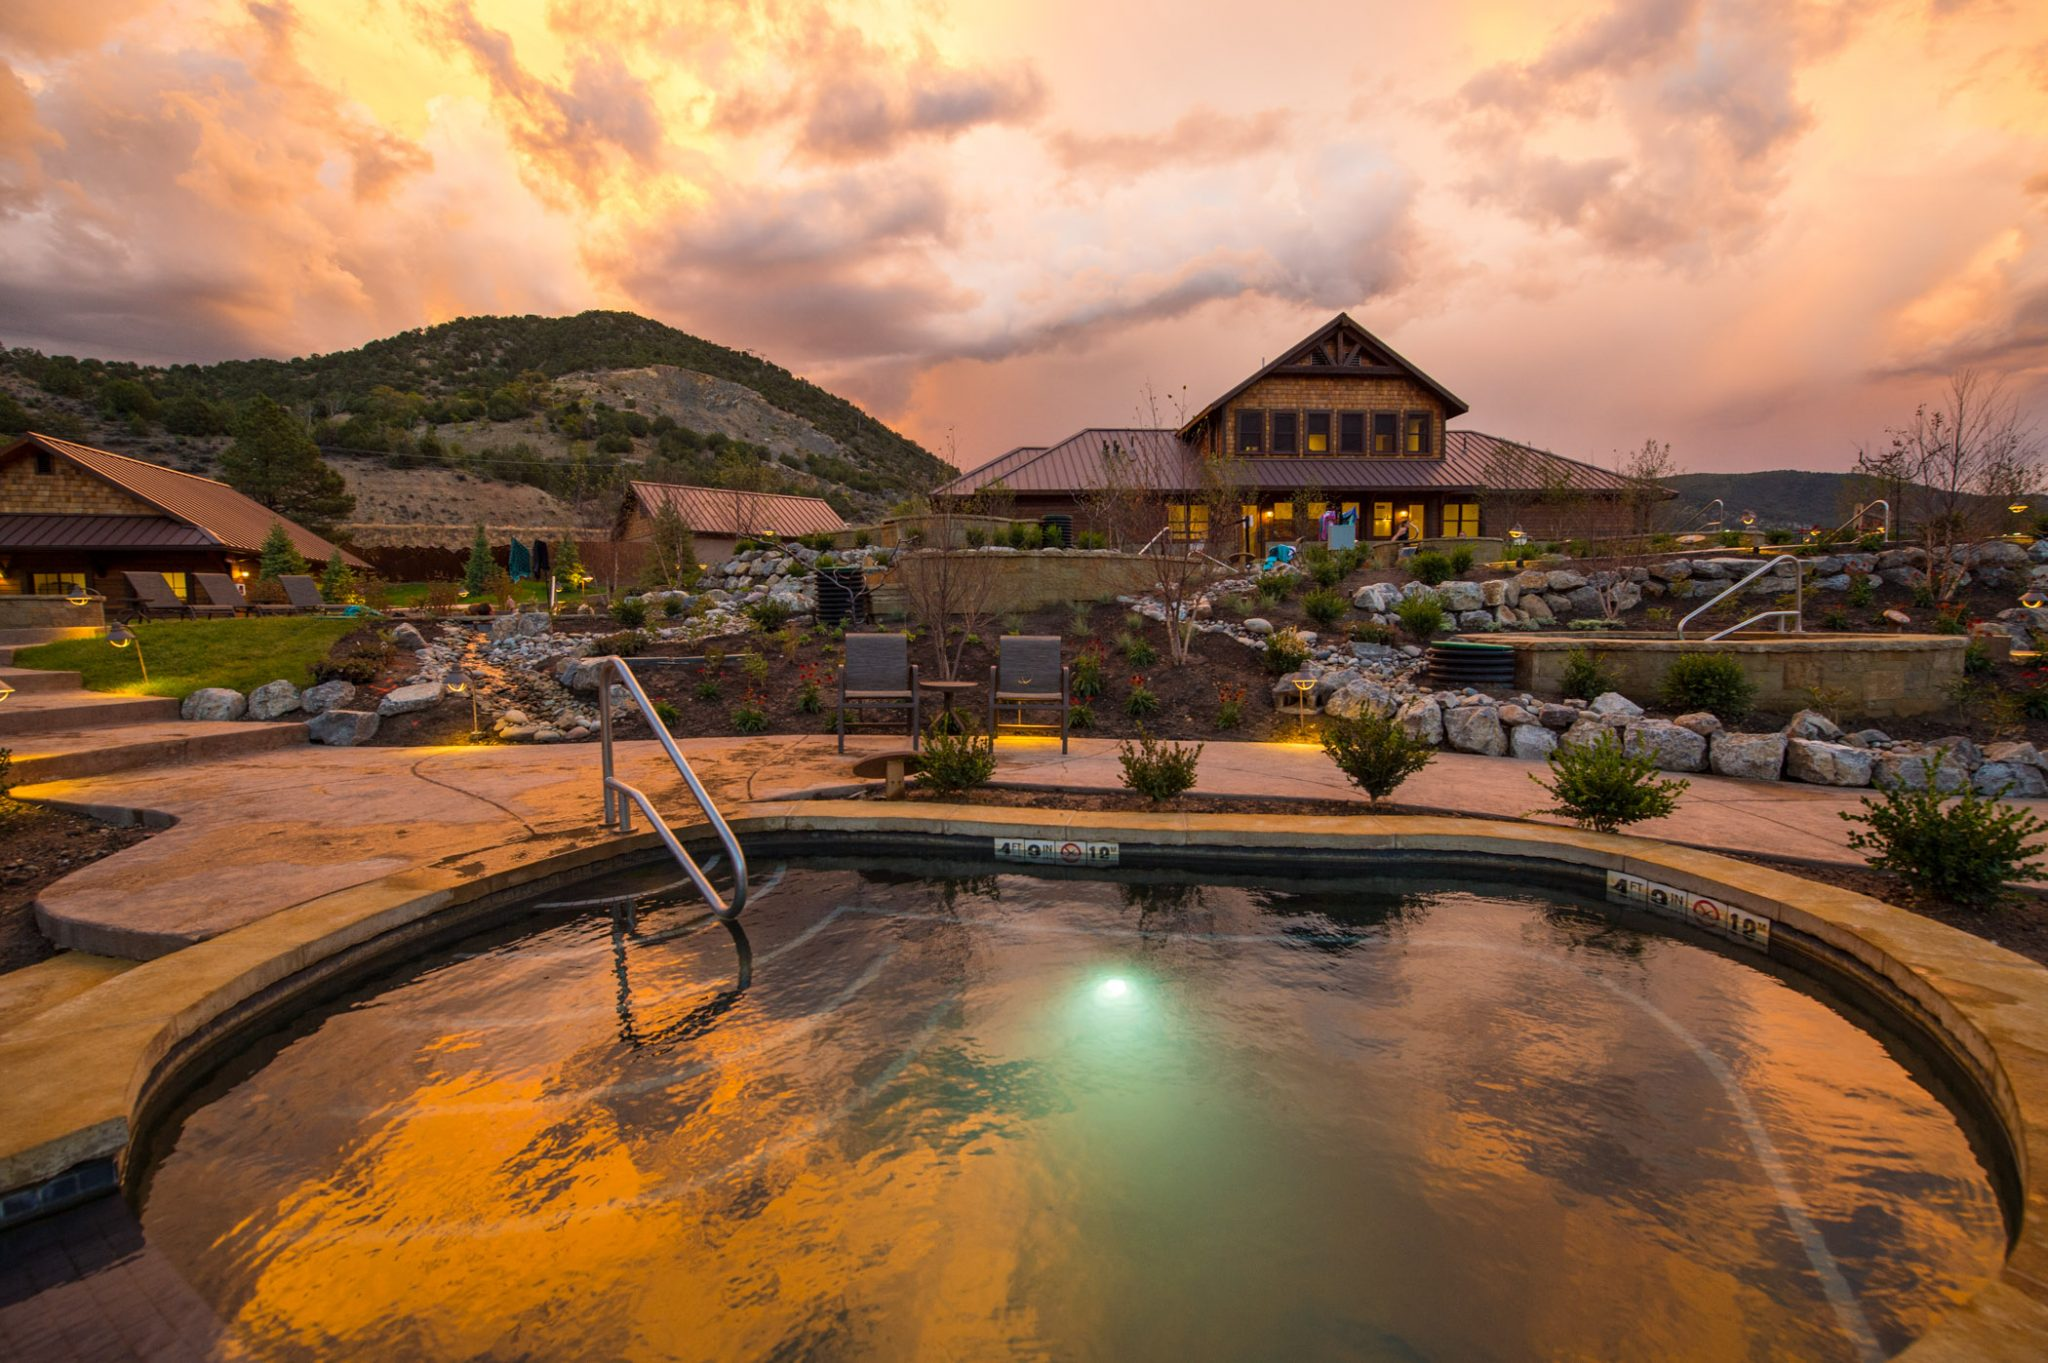 Iron Mountain Hot Springs in the evening